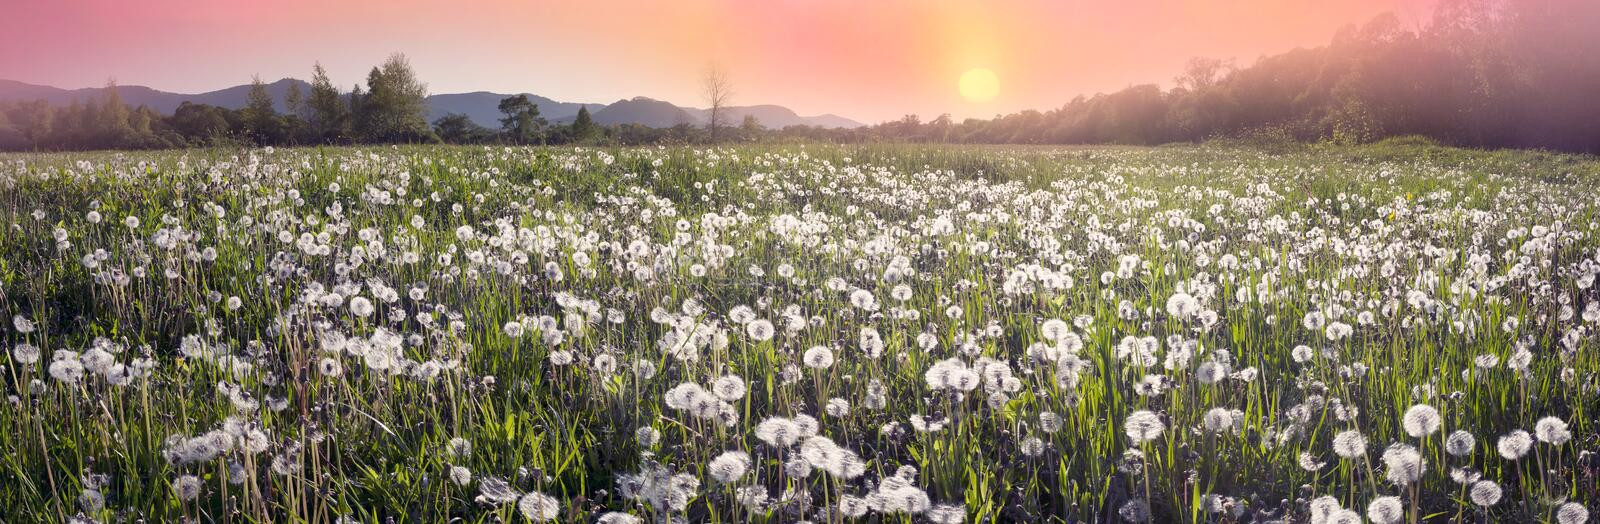 Daffodils at dawn. Daffodils on rasvete in Hust Valley, Transcarpathia, Ukraine. Large field of ancient relict flowers - a national landmark in the region royalty free stock image